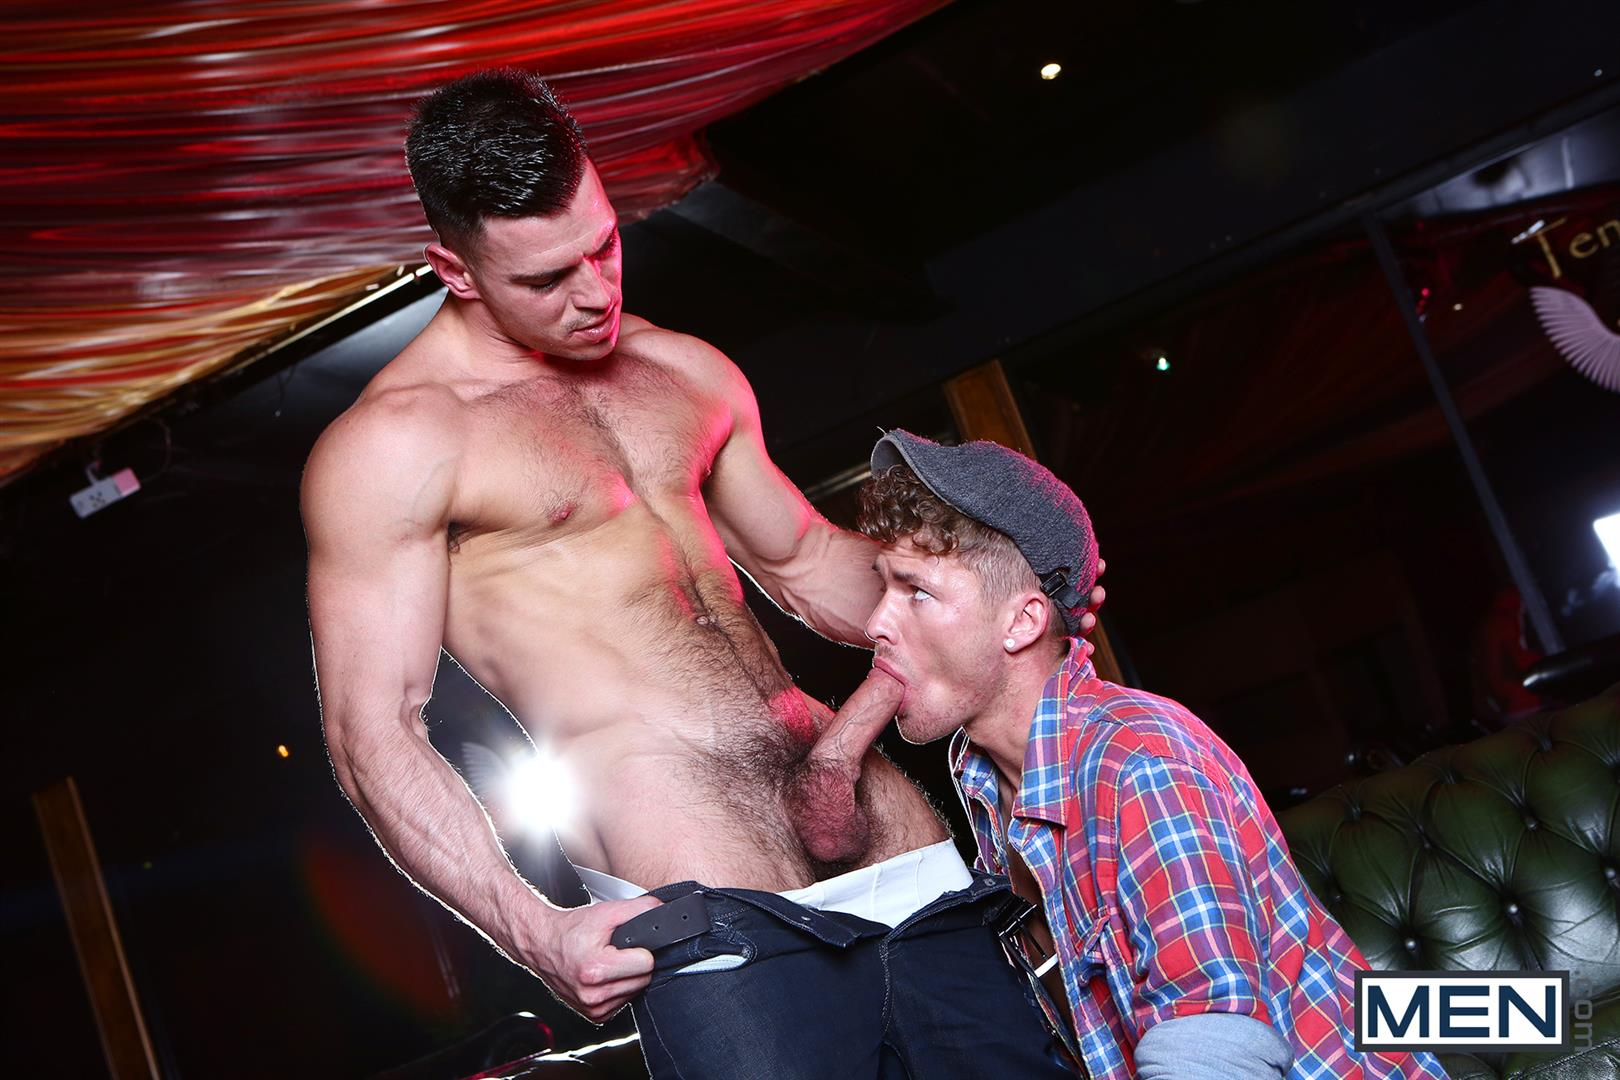 Men Paddy OBrian and McKenise Cross Muscle Hunks With Horse Cocks Fucking Amateur Gay Porn 12 Paddy OBrian Fucking McKensie Cross With His Big Thick Cock